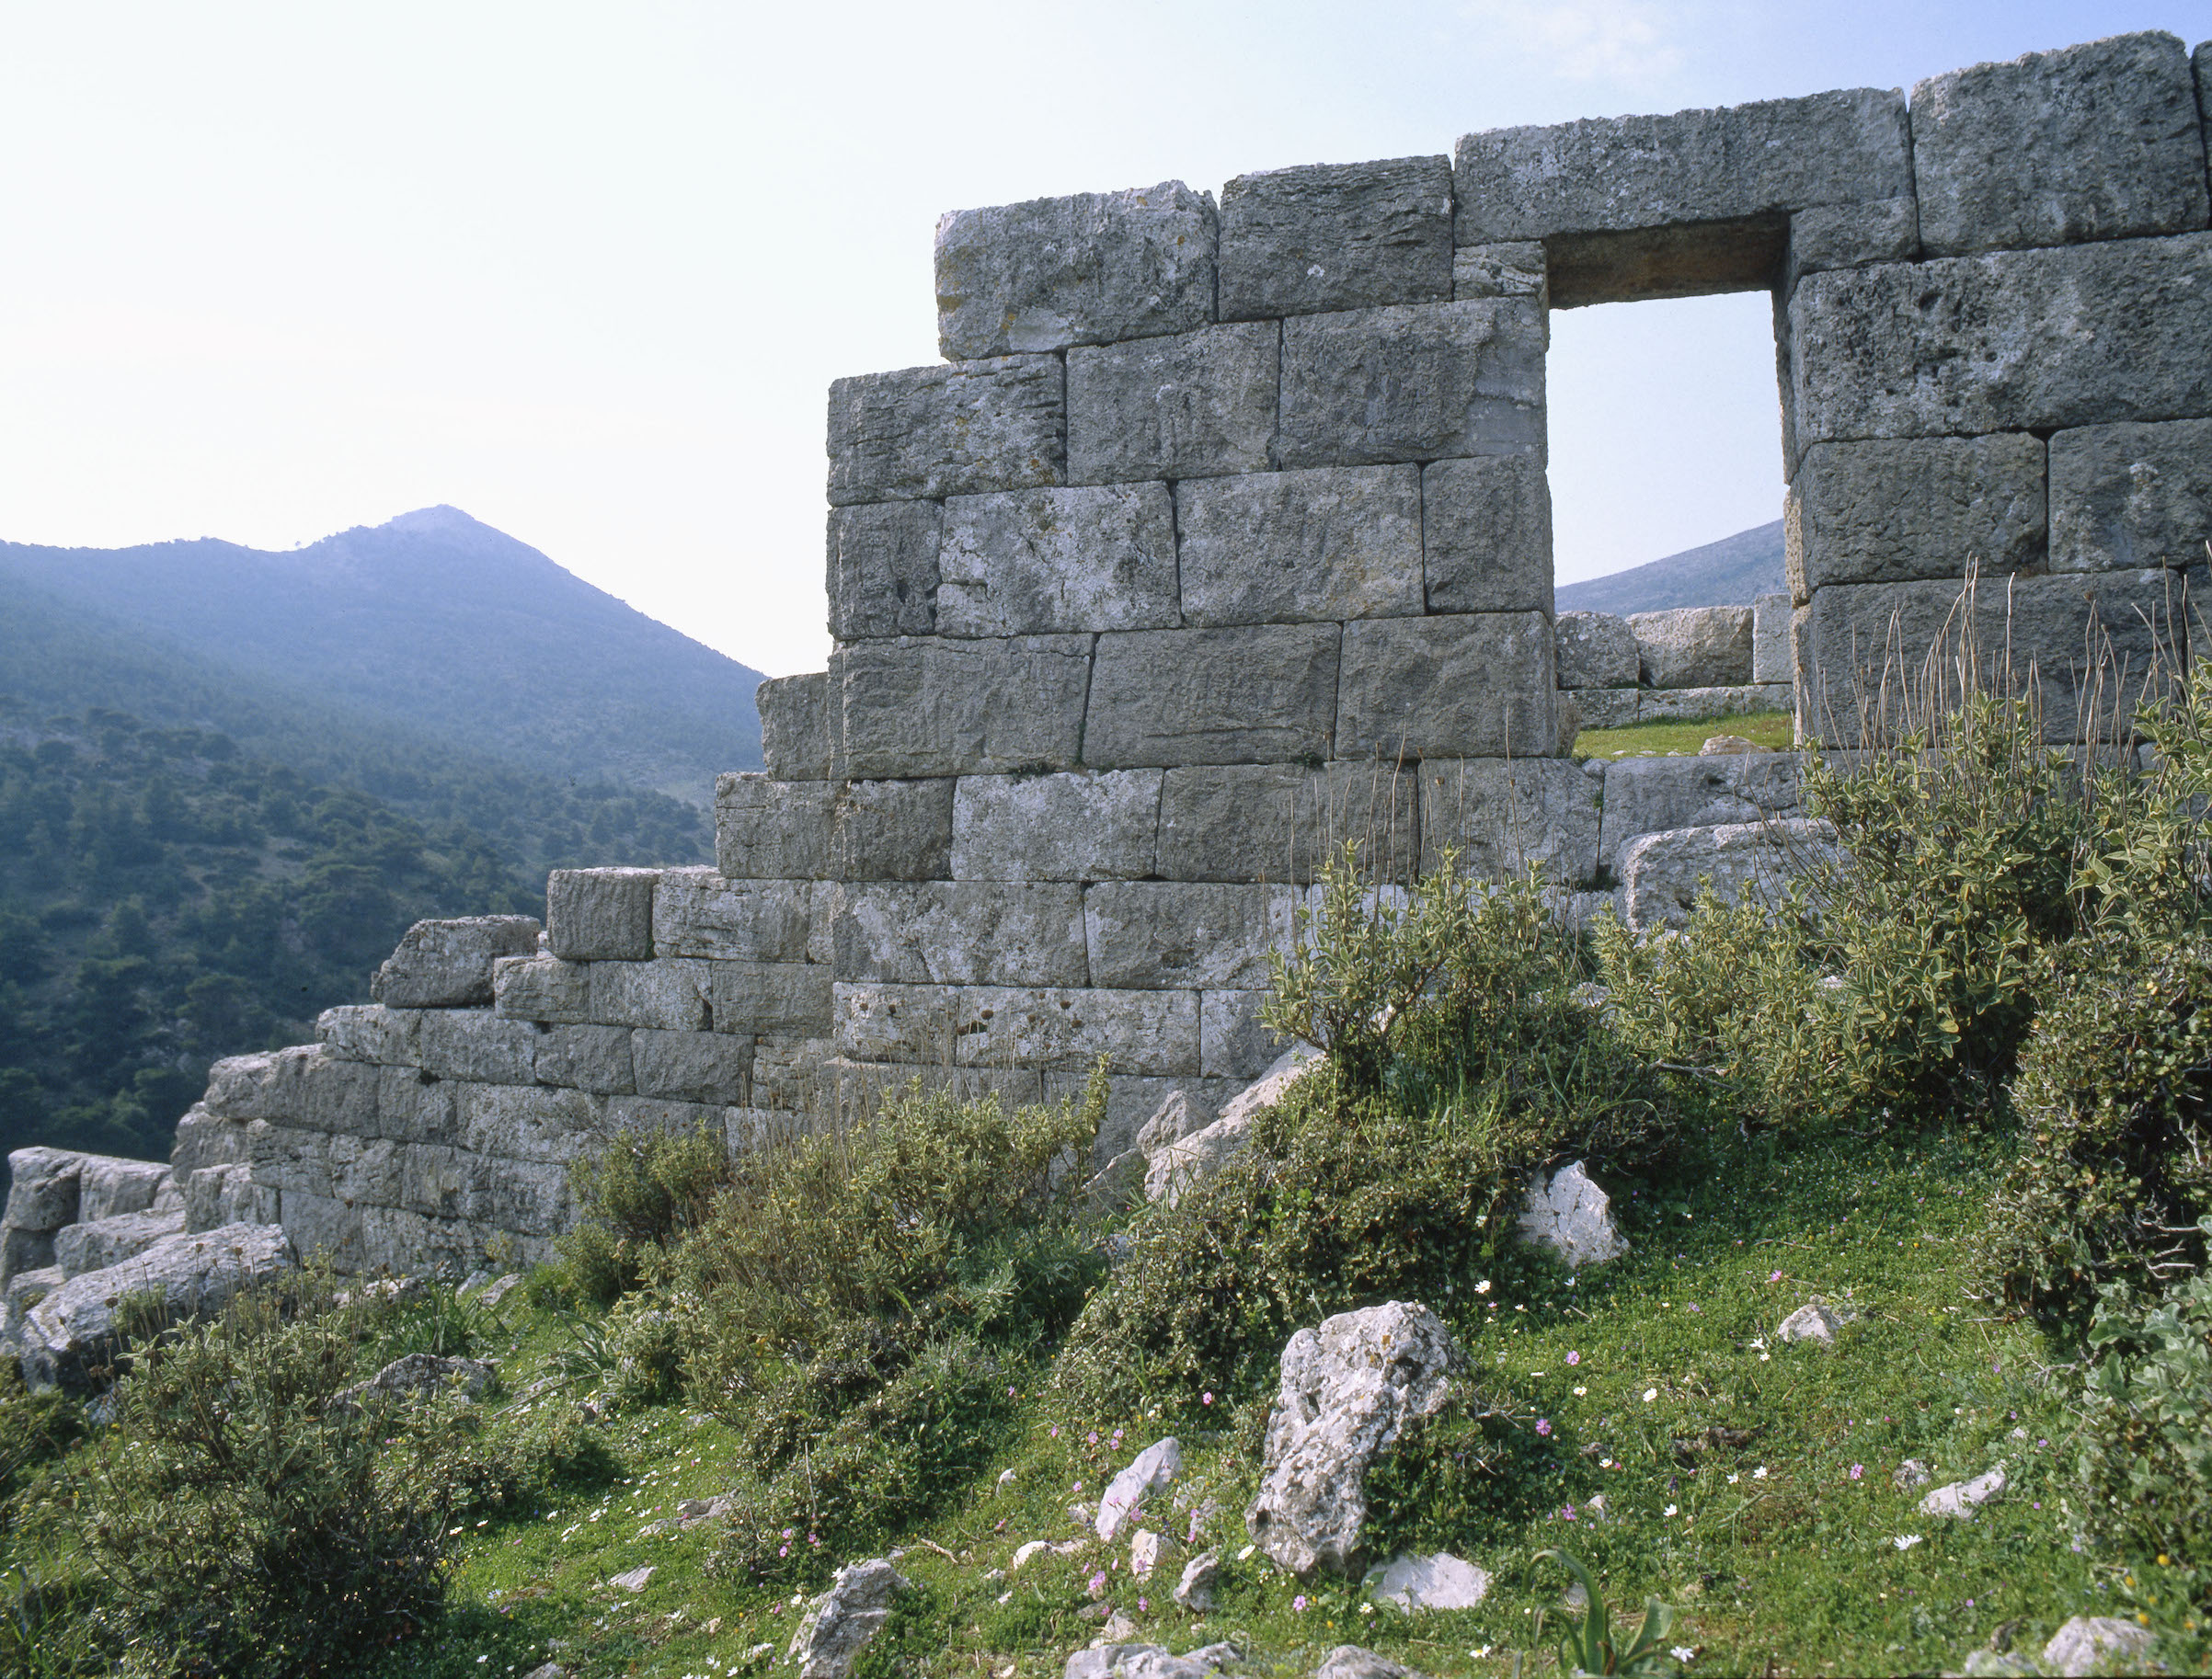 View of the ancient fortification wall of the fort at Phyle, north-west of Athens, photographed in 1980.